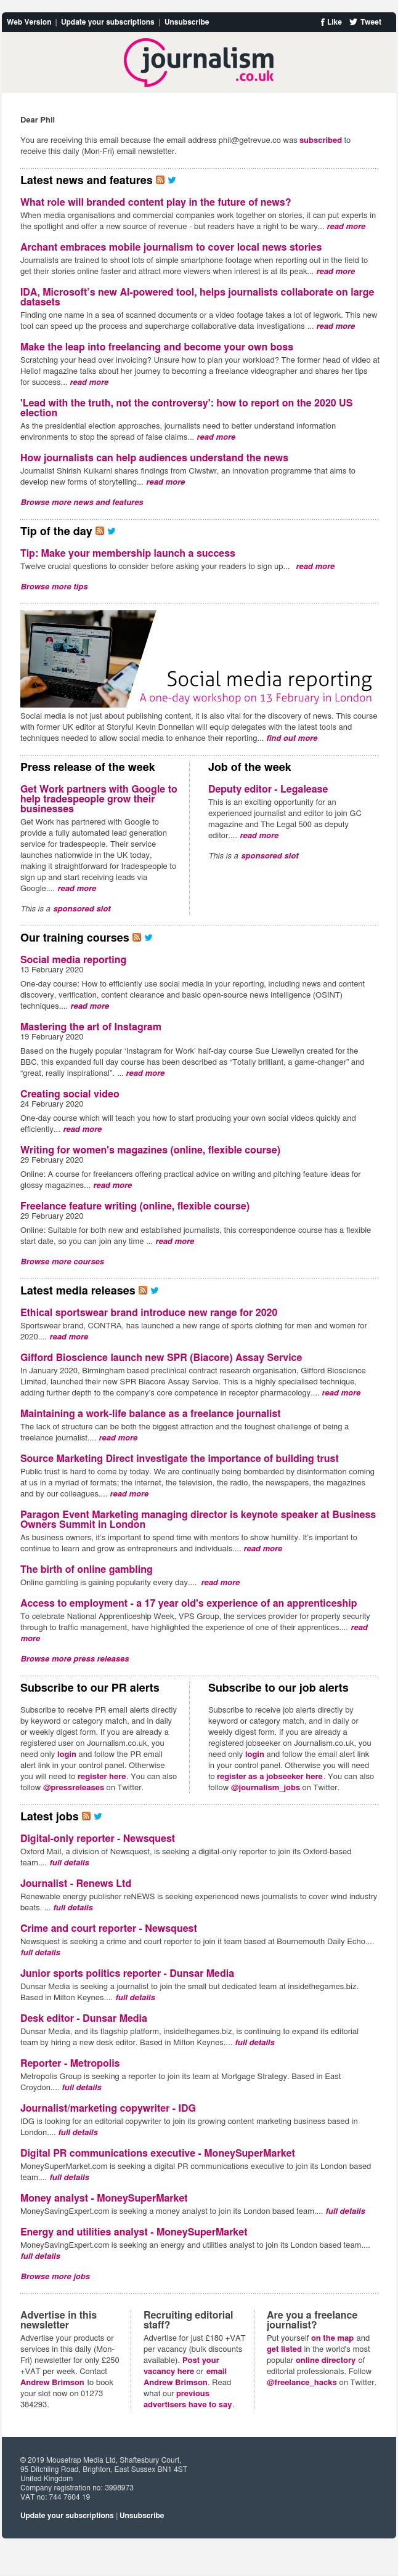 Journalism news: What role will branded content play in the future of news? | 74 jobs